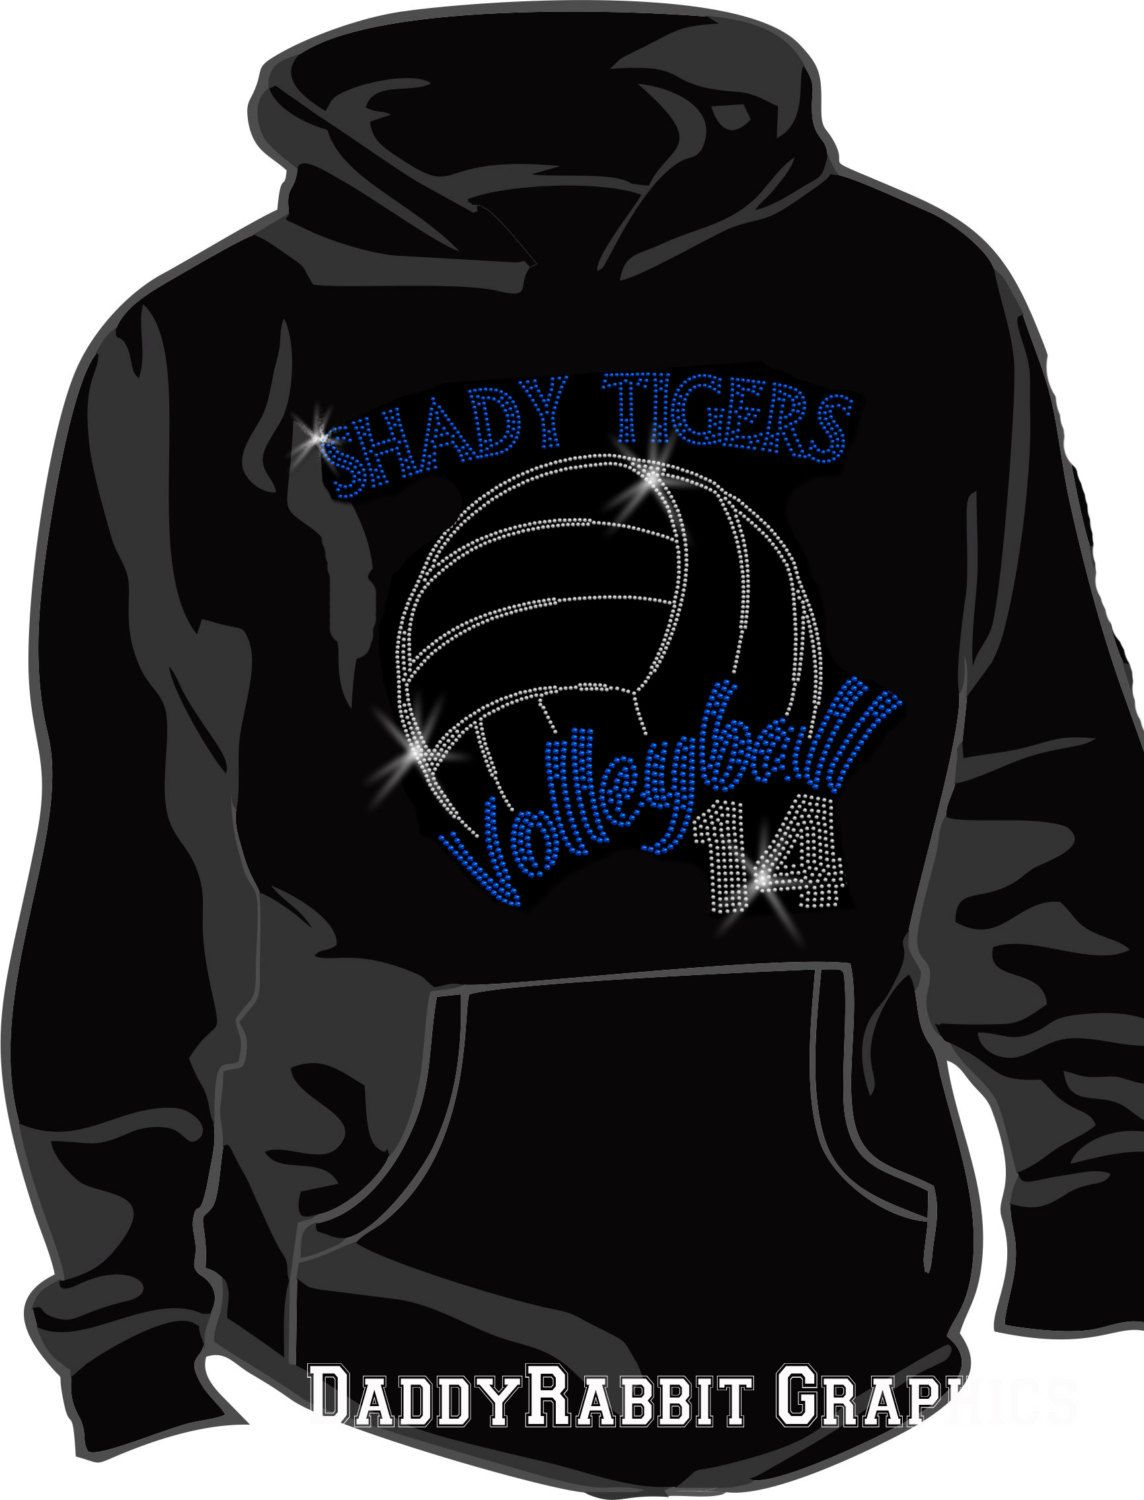 Volleyball Bling Hoodie With Bling Name And Number By Daddyrabbitgraphics On Etsy Https Www Etsy Com Listi Volleyball Shirt Designs Hoodies Volleyball Shirts